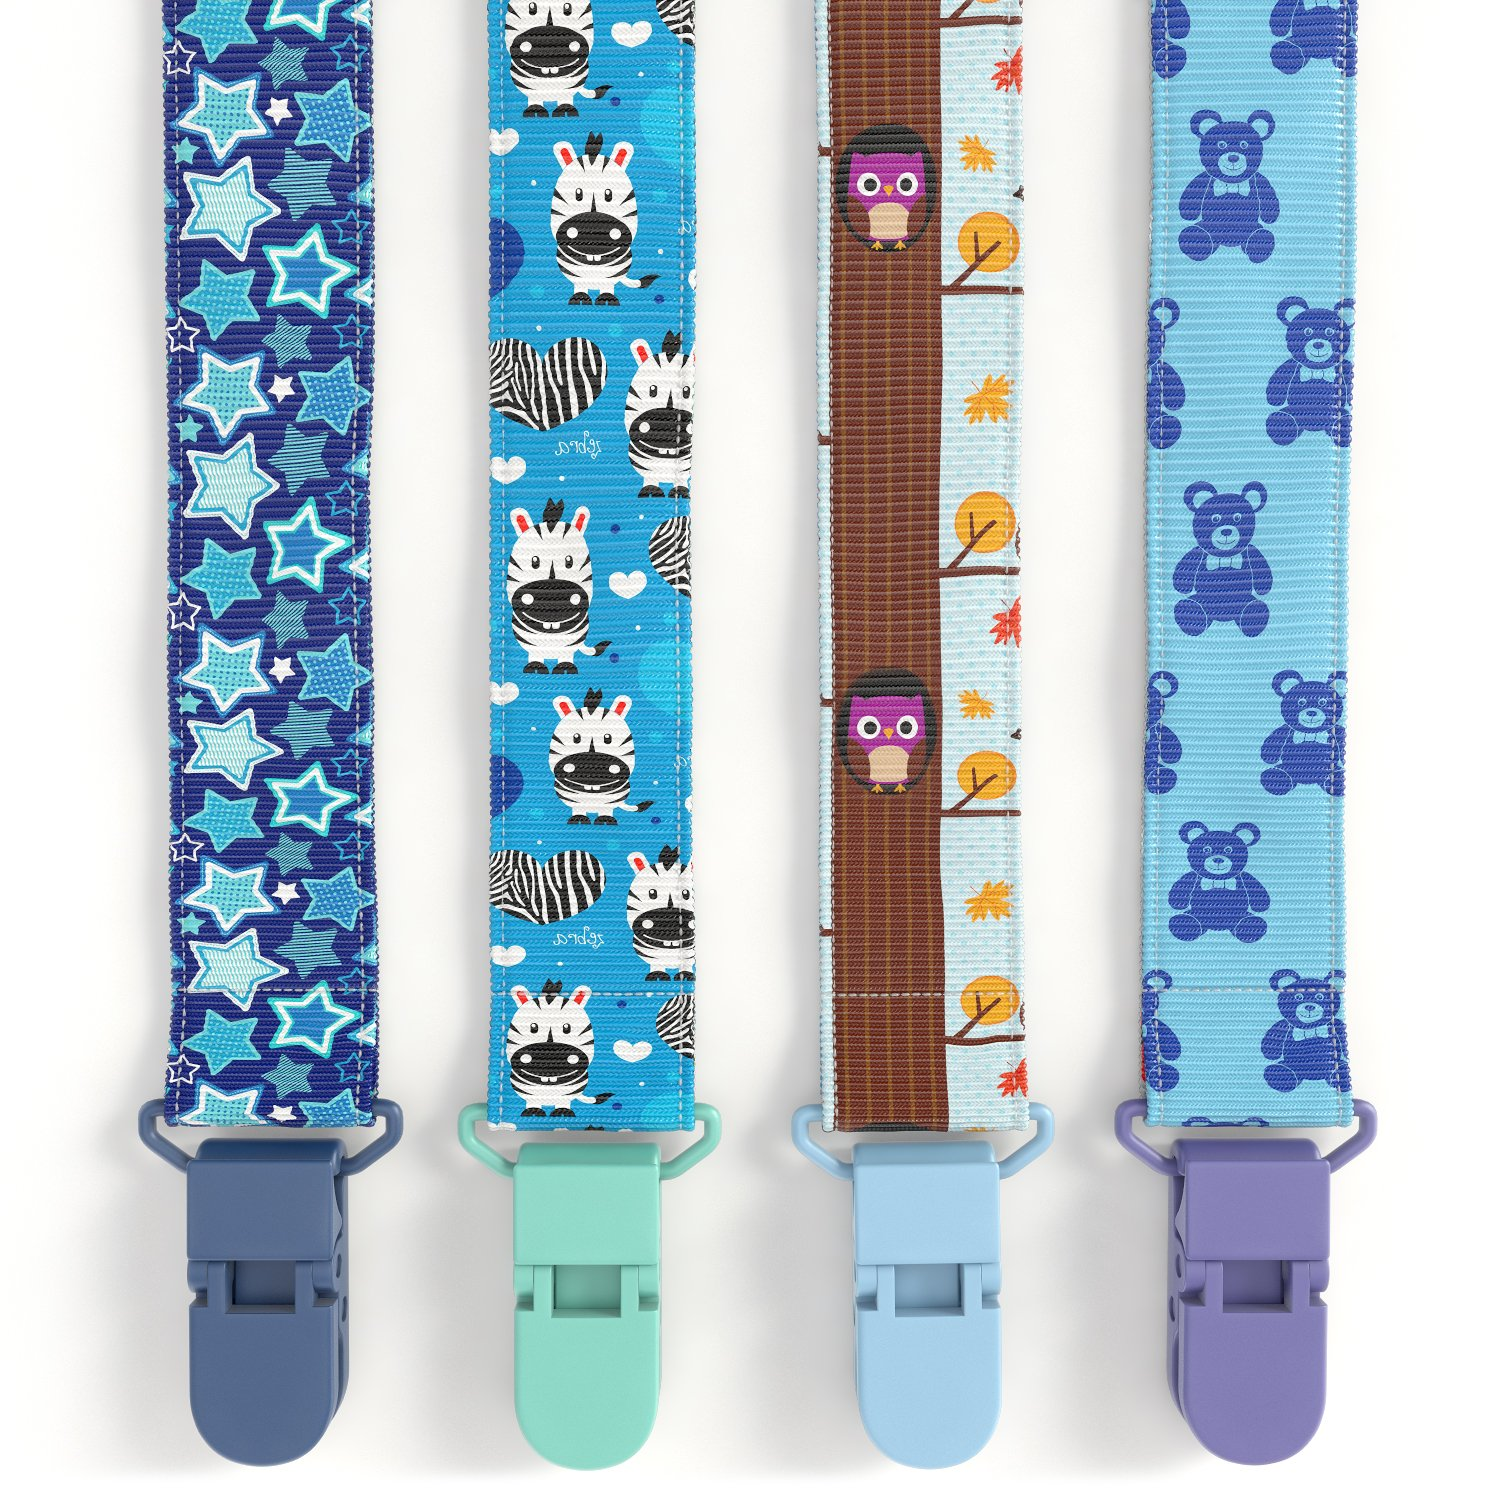 Premium Quality Baby Pacifier Clip (4 Pack) for Boys and Girls! . Fun and Cute ,Extra Safe, Double-sided Baby Pacifier Leash Designs. Glogex